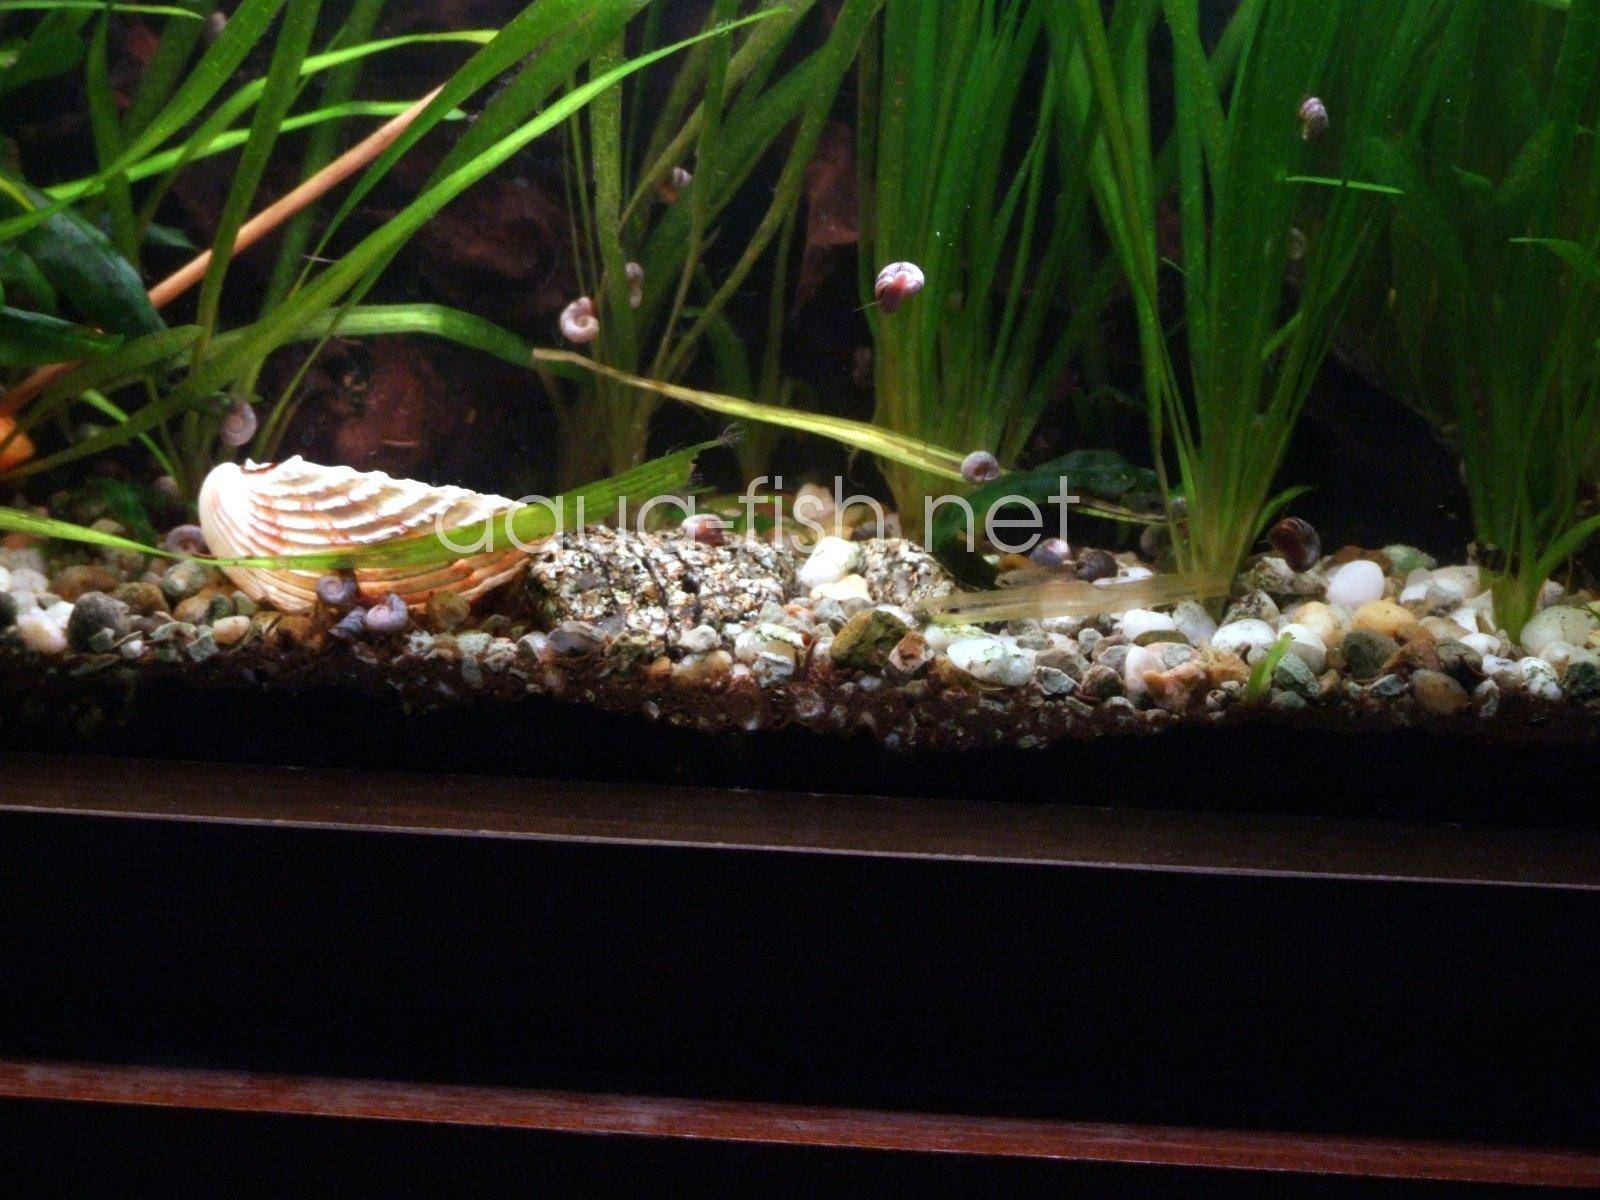 how to clean algae off gravel in fish tank